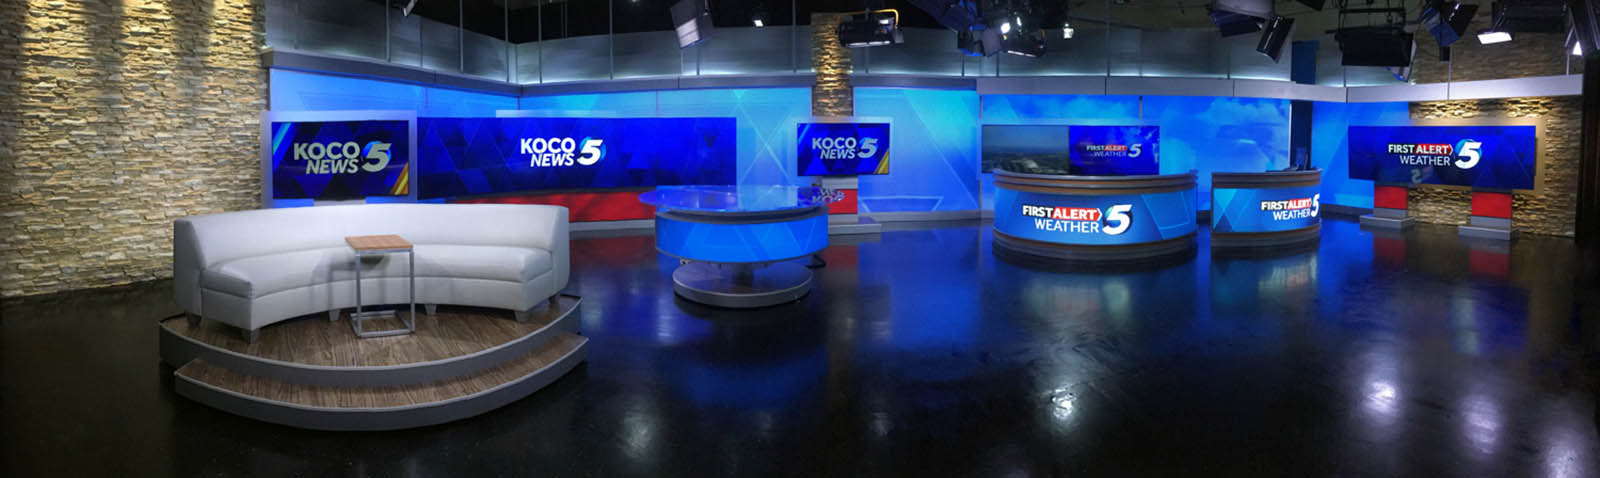 KOCO 5 News studio